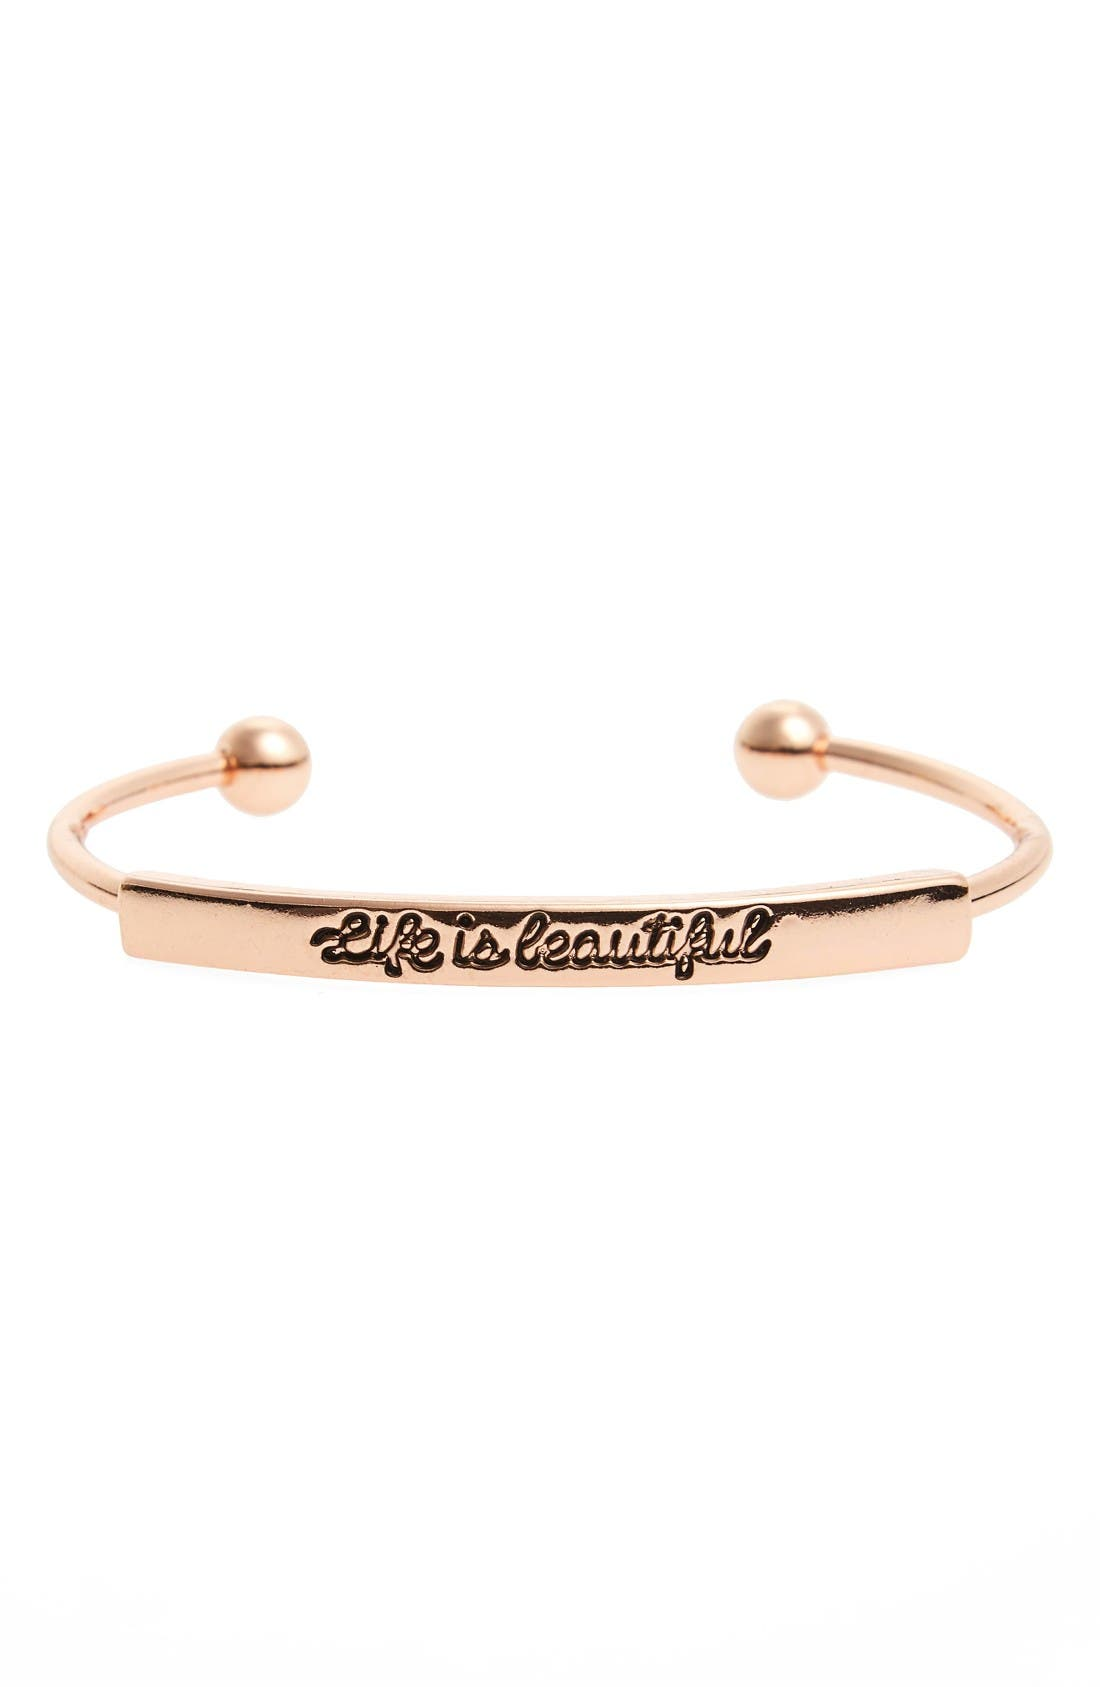 Main Image - Topshop Life is Beautiful Cuff